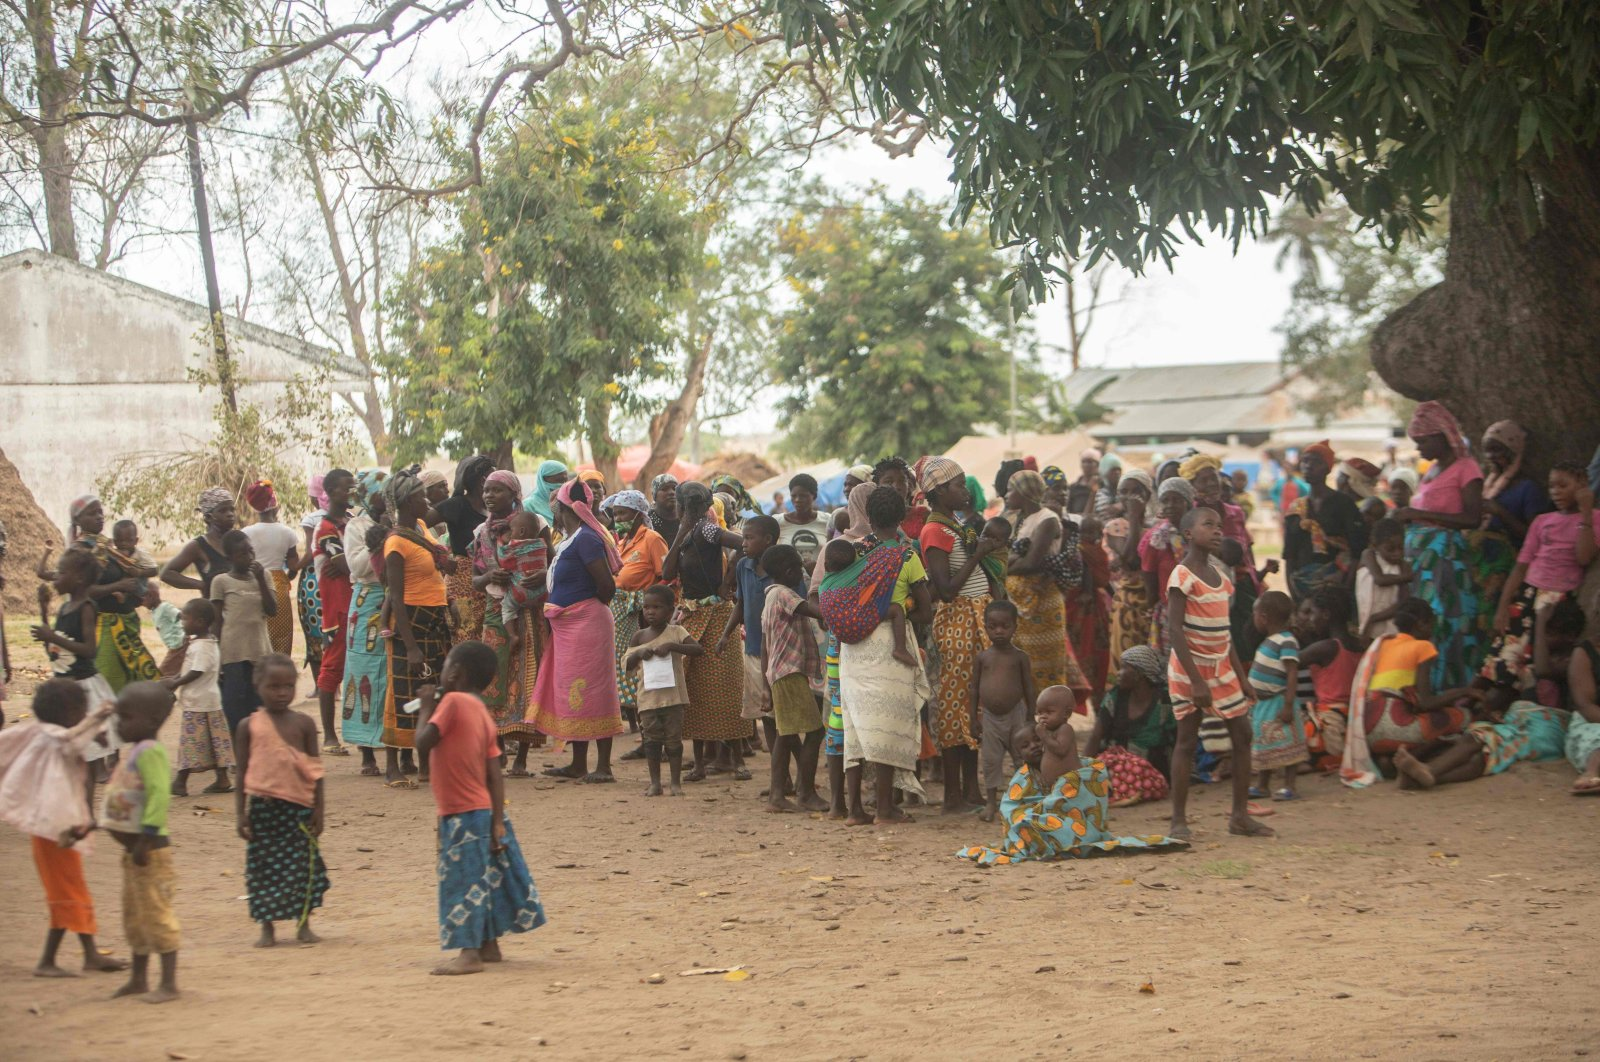 Displaced women meet at the Centro Agrrio de Napala where hundreds of displaced are sheltered after fleeing attacks by armed insurgents in different areas of the province of Cabo Delgado, in northern Mozambique, on Dec. 11, 2020. (AFP Photo)